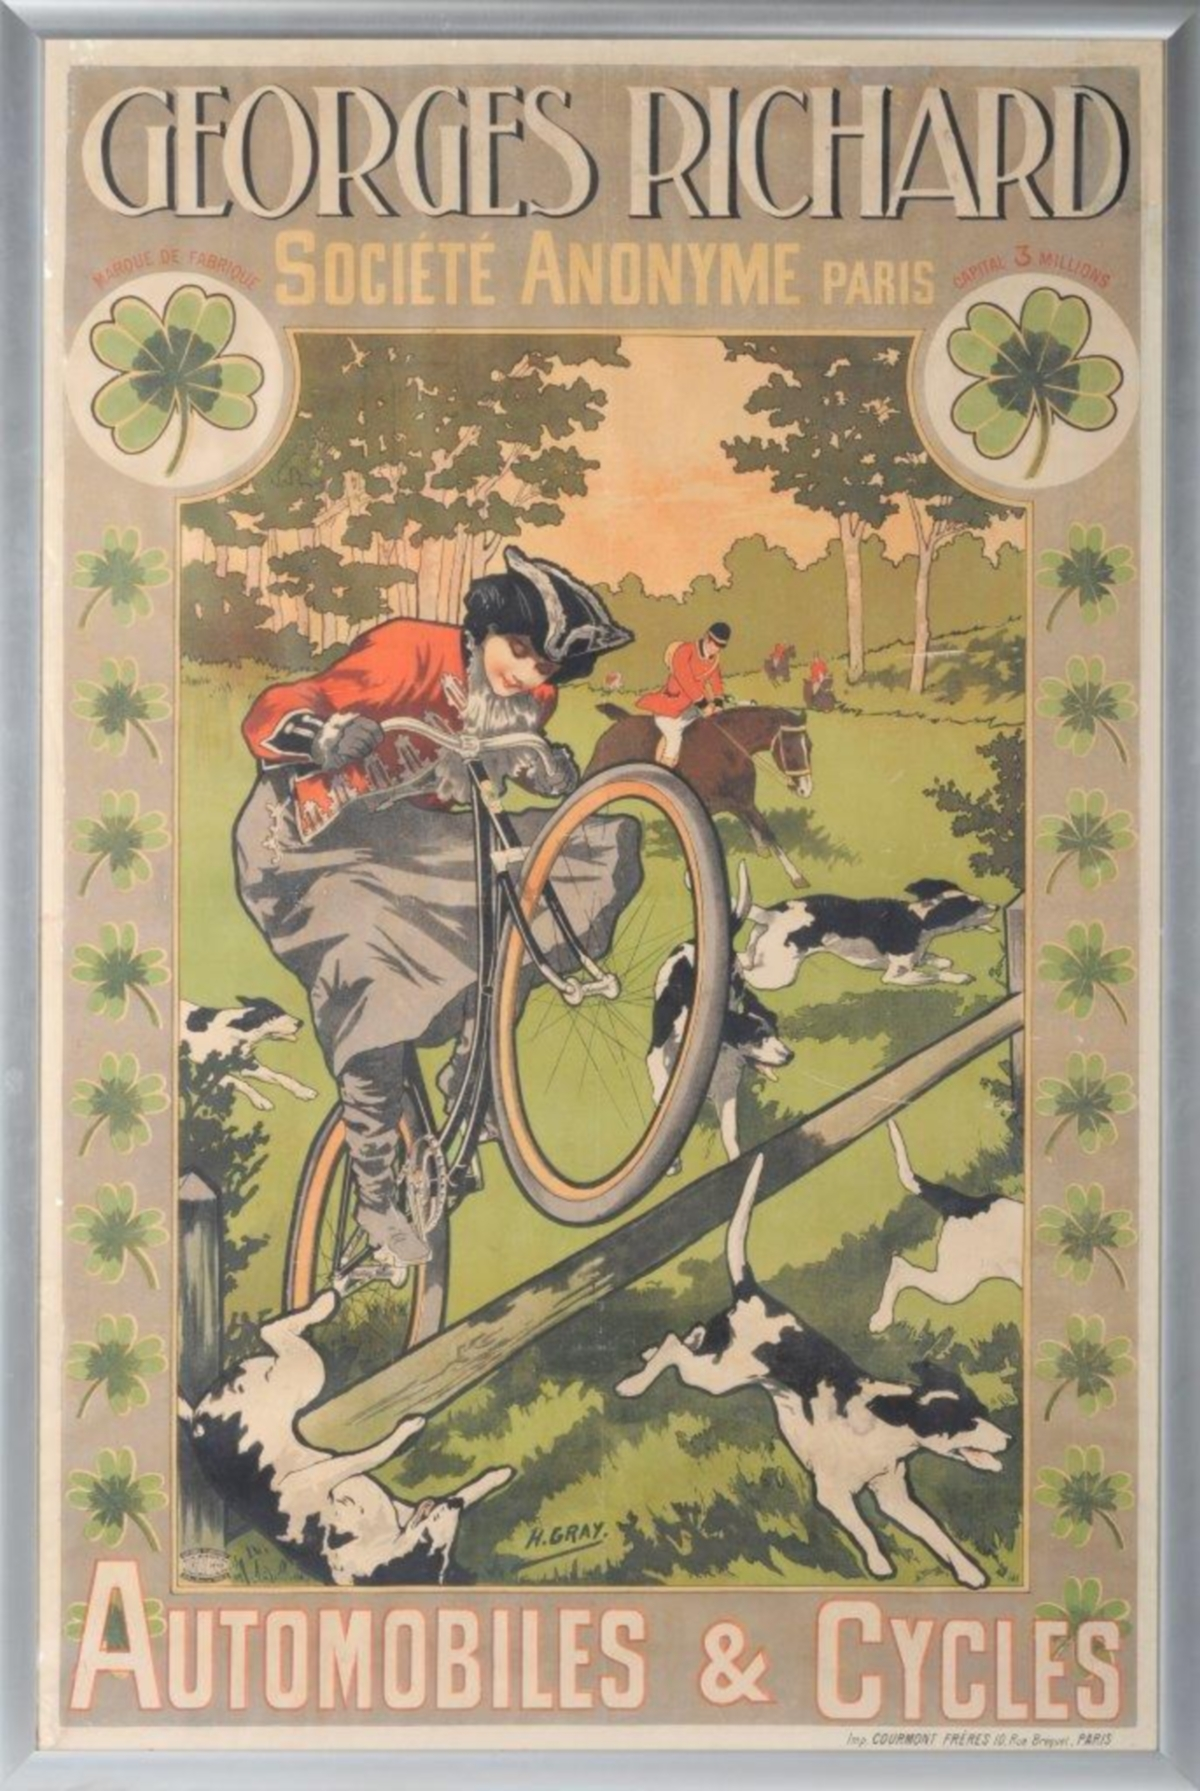 French Advertising Poster for Georges Richard Automobiles & Cycles sold for £750